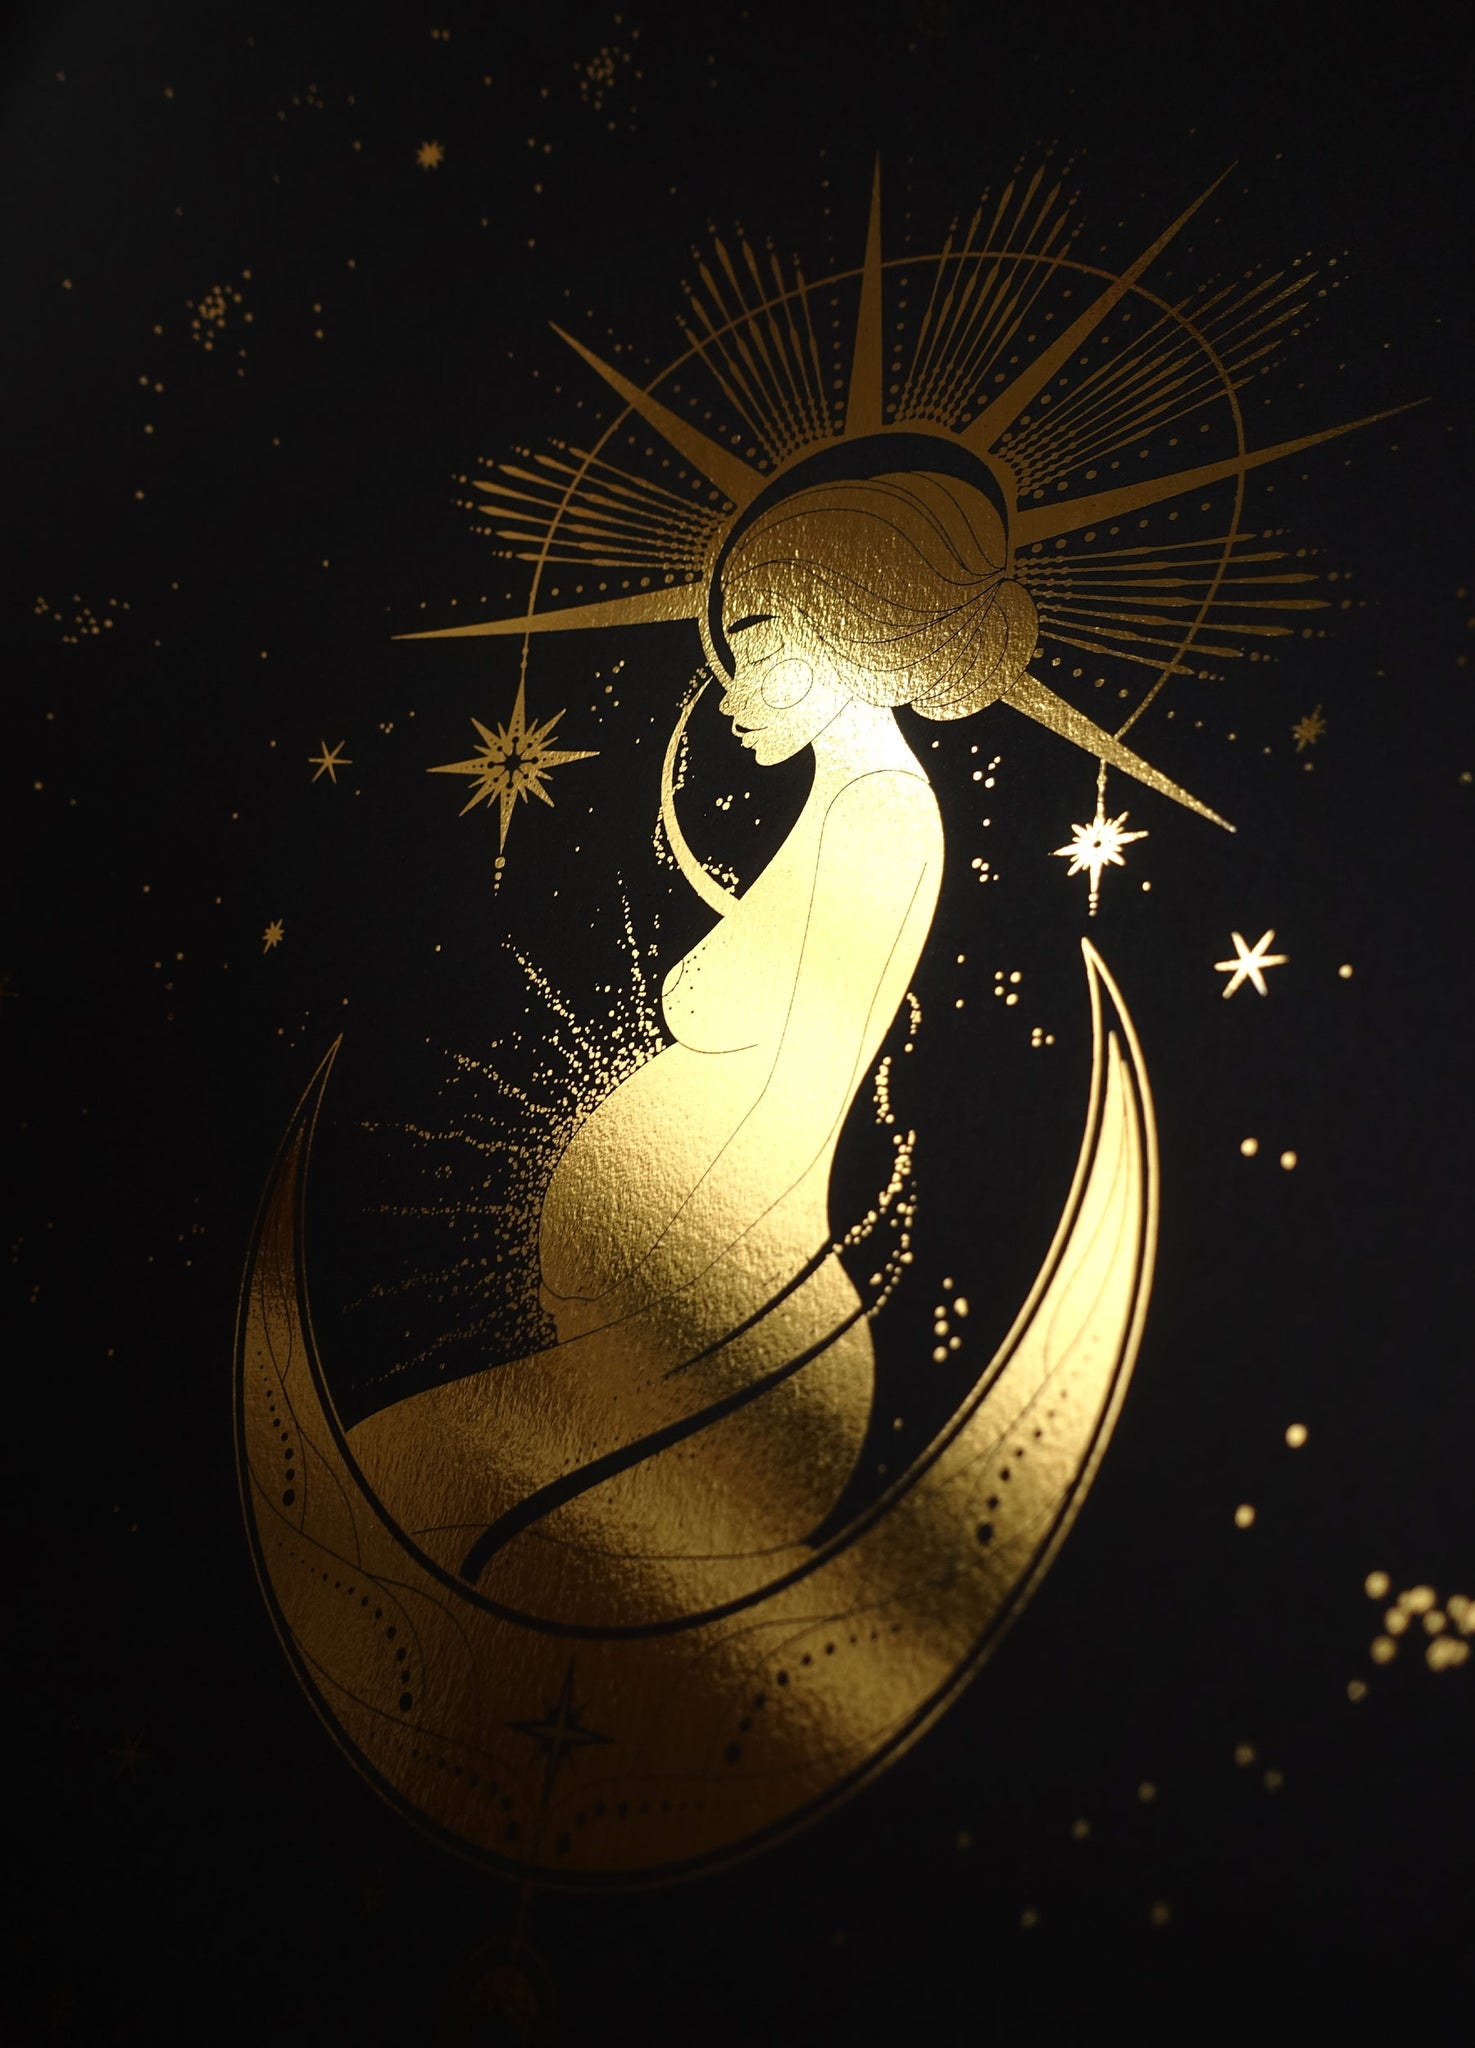 Sacred Goddess Mother gold foil print on black stock paper by Cocorrina & Co Design Studio & Shop